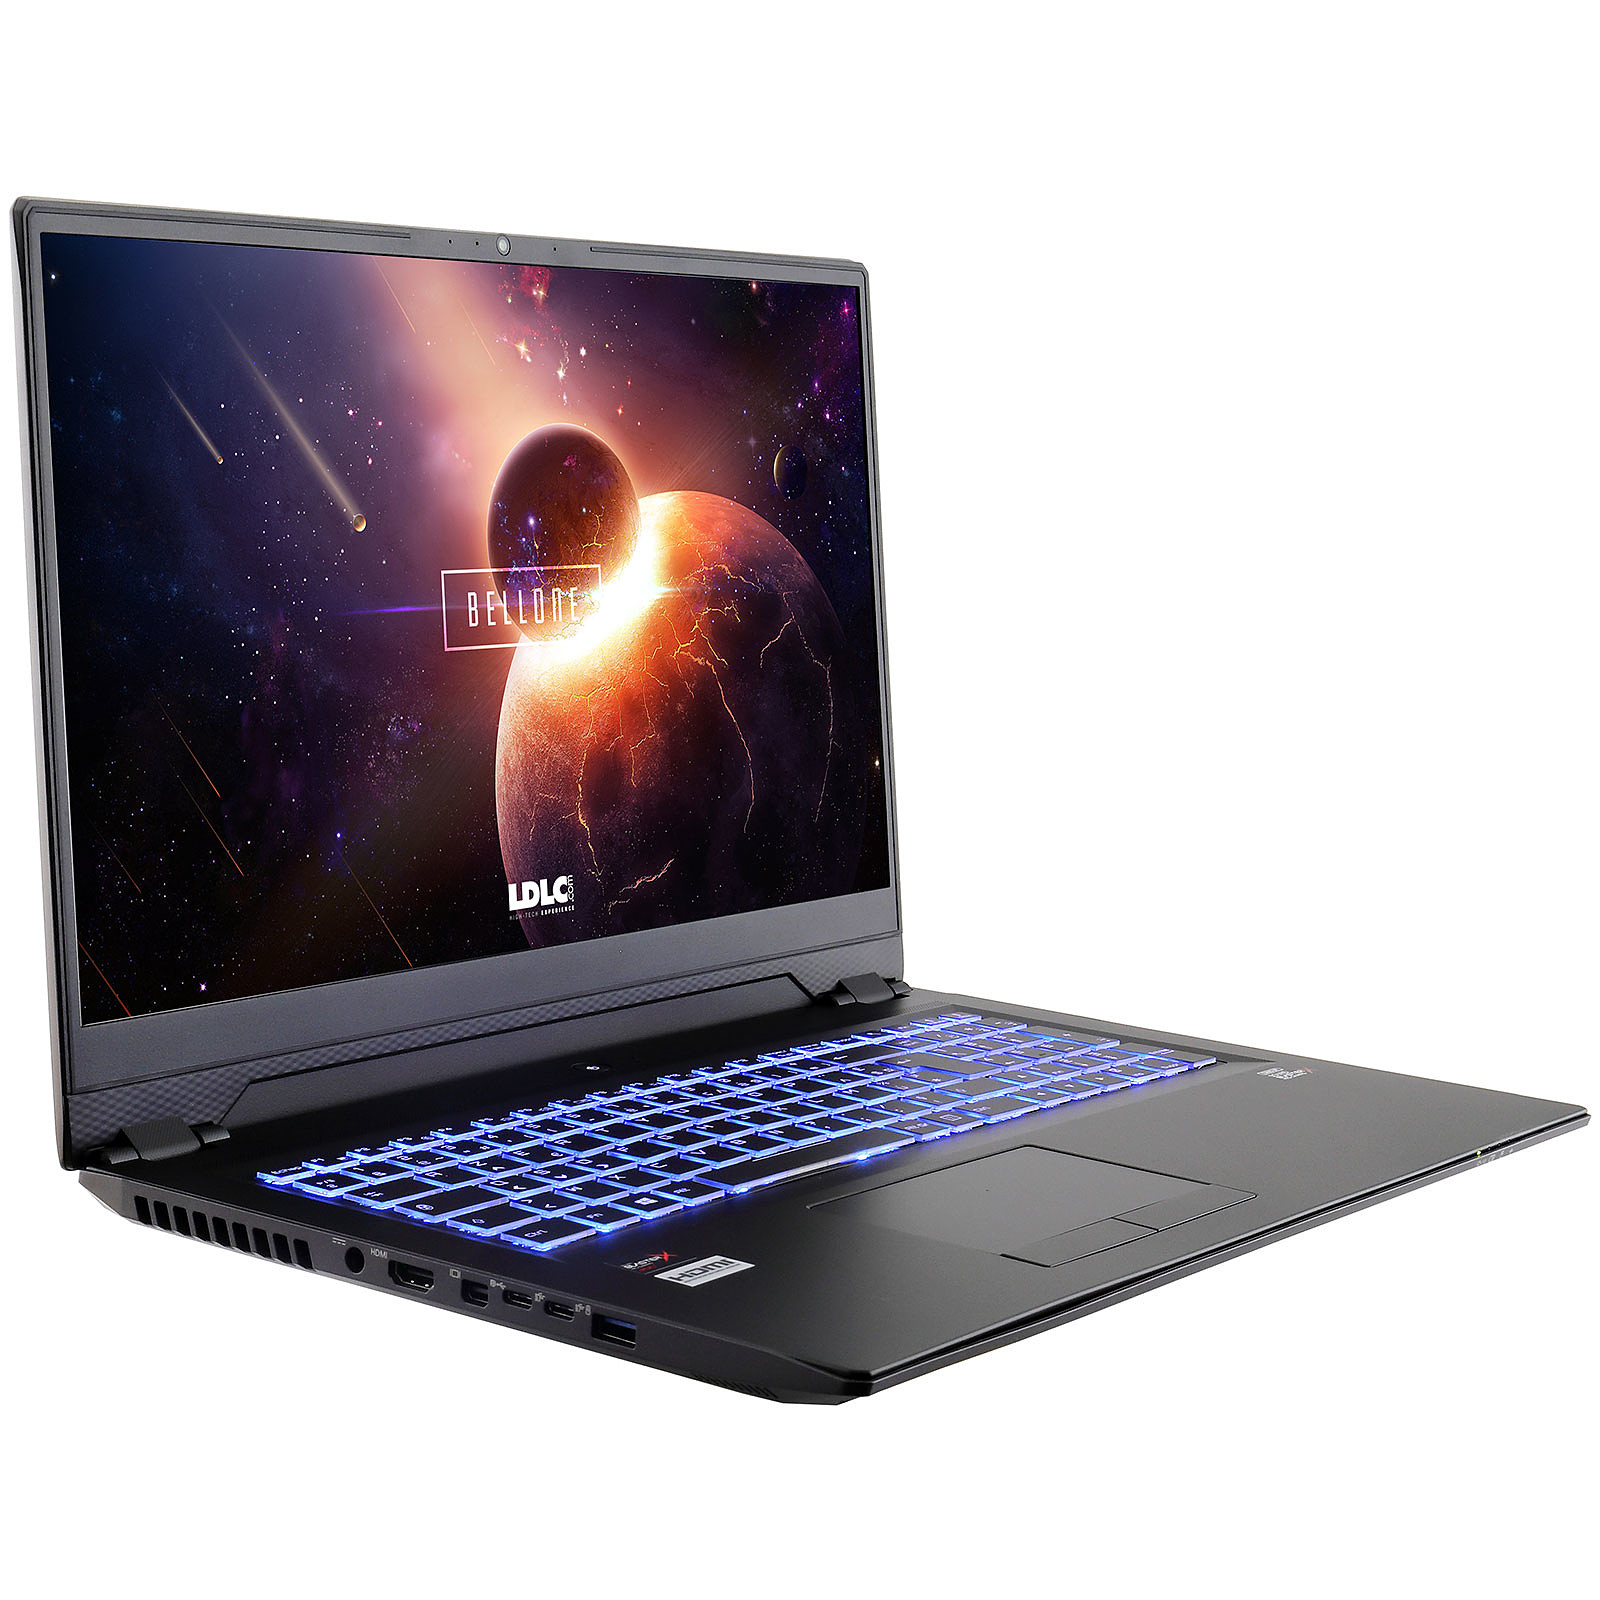 LDLC Bellone XF7-I7-32-S40M5P